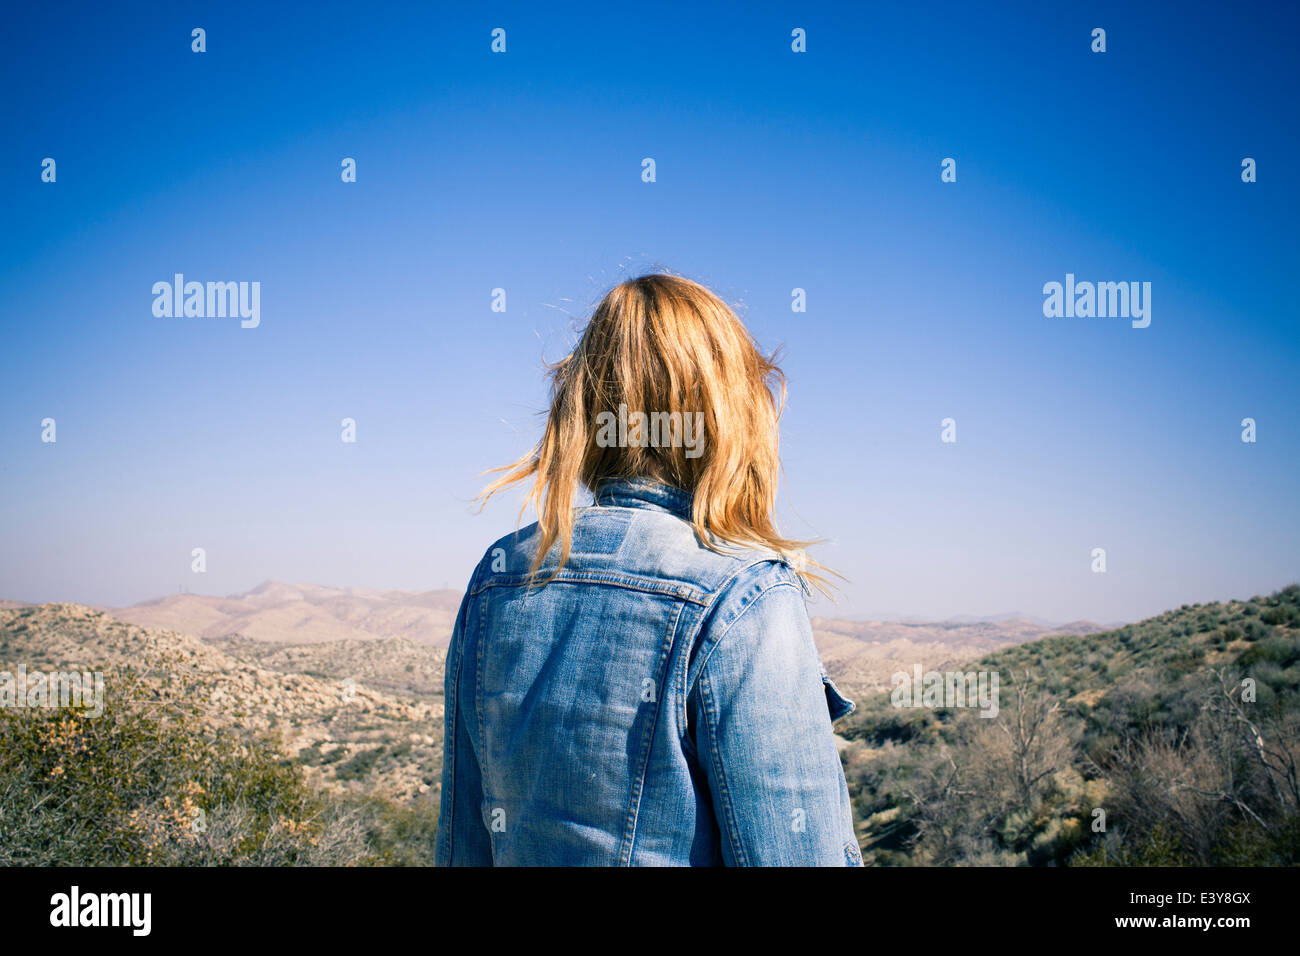 Rear view of mid adult woman gazing at view, Lake Arrowhead, California, USA Stock Photo